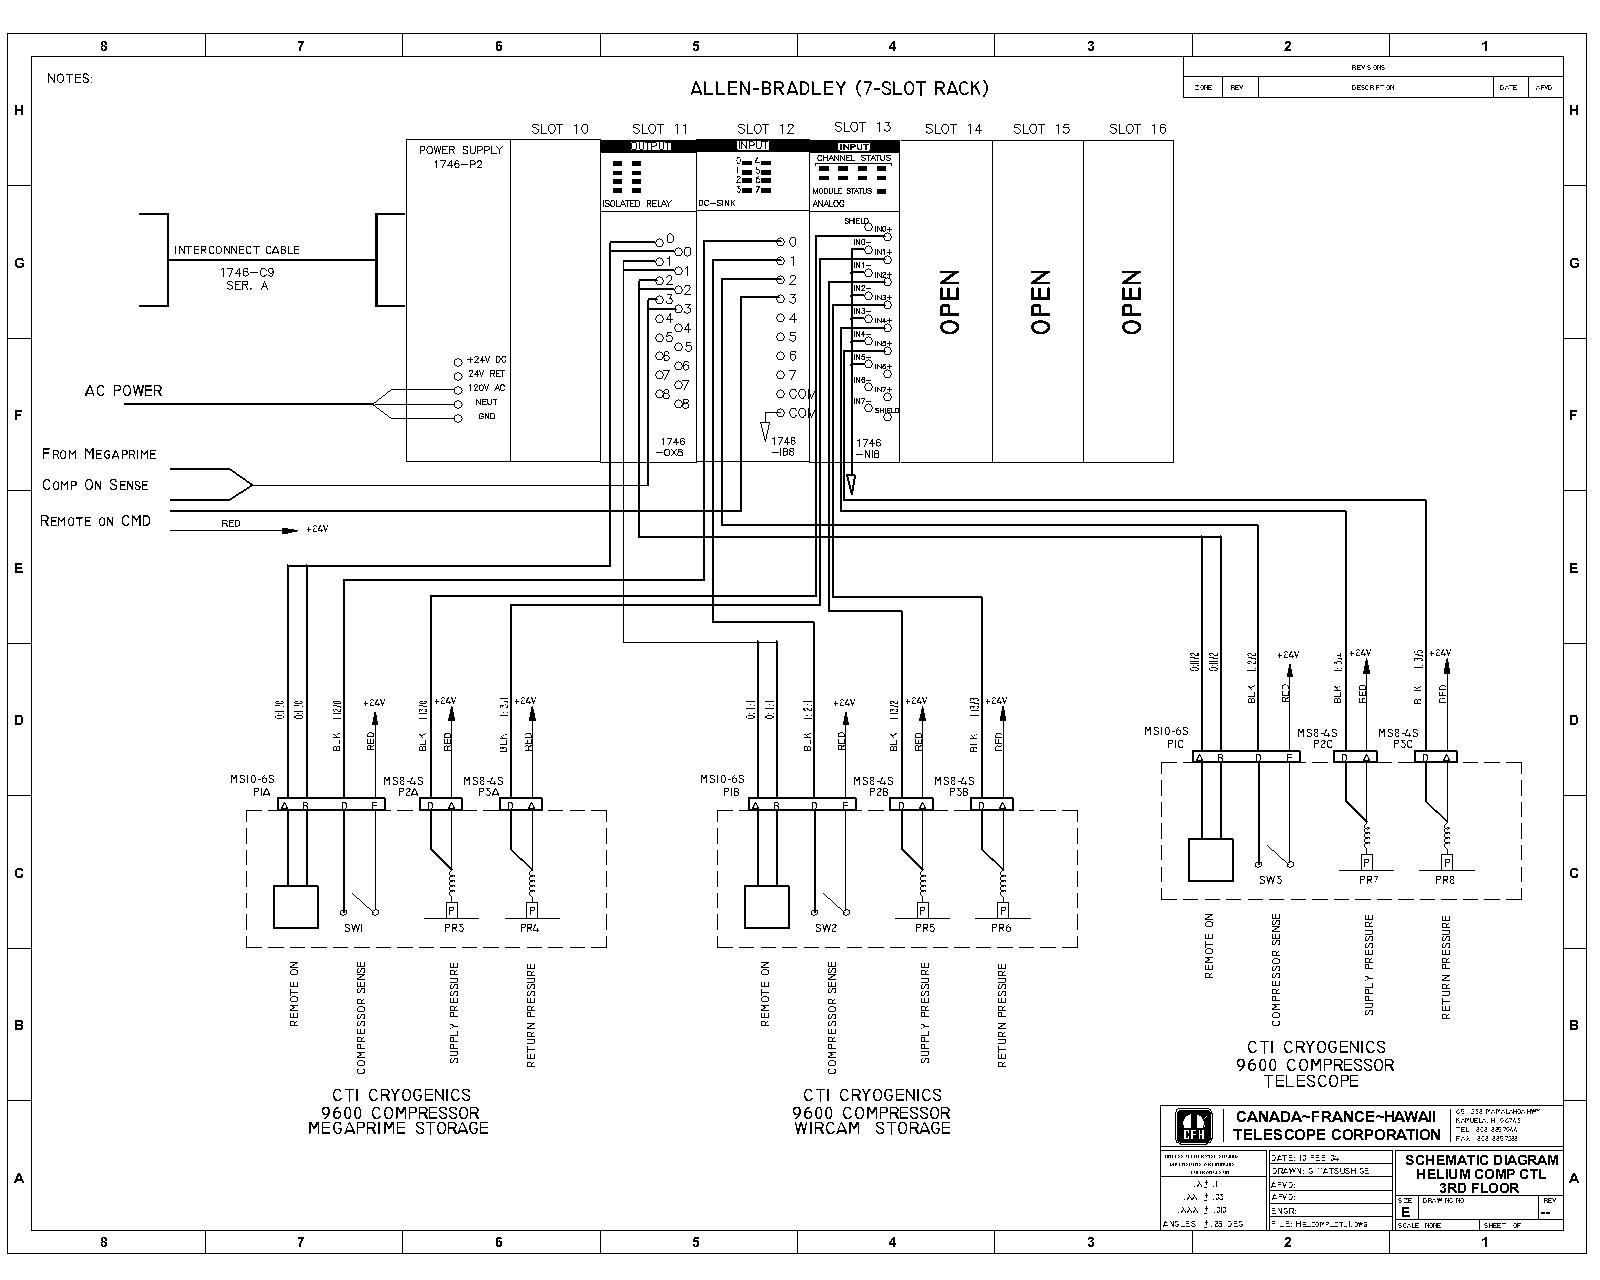 wiring diagram plc omron wiring diagram drawing software plc Wiring Diagram PDF